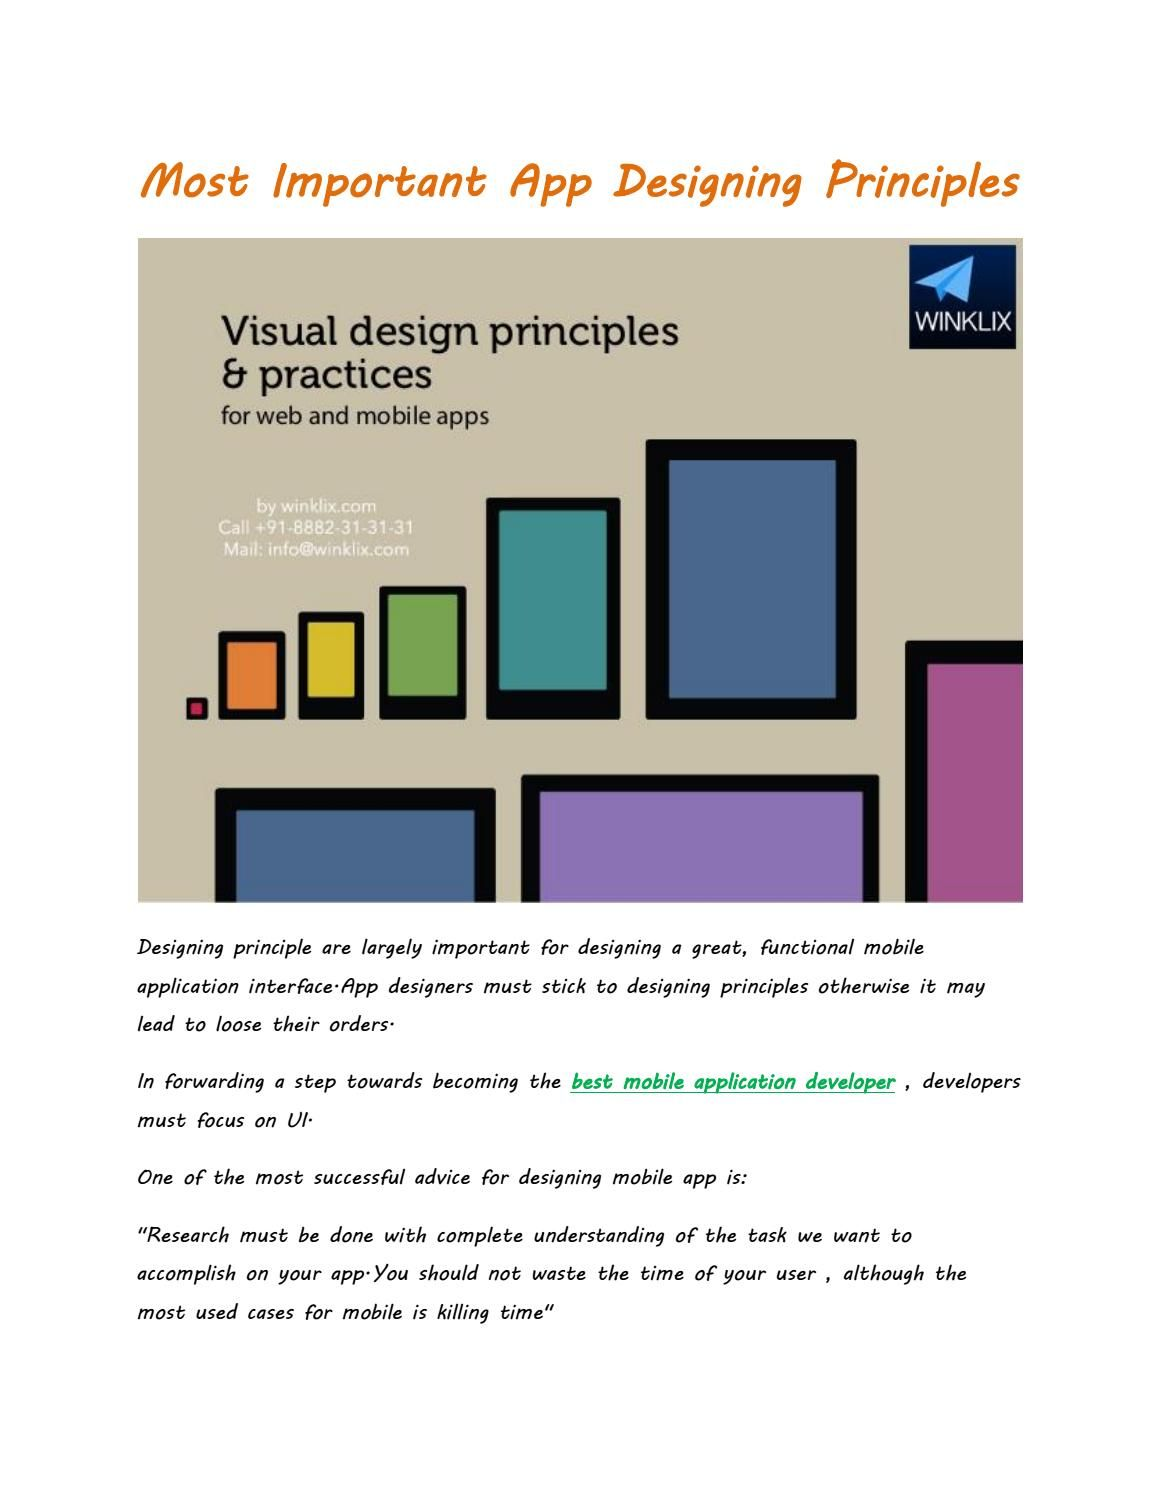 Most important app designing principles App, App design